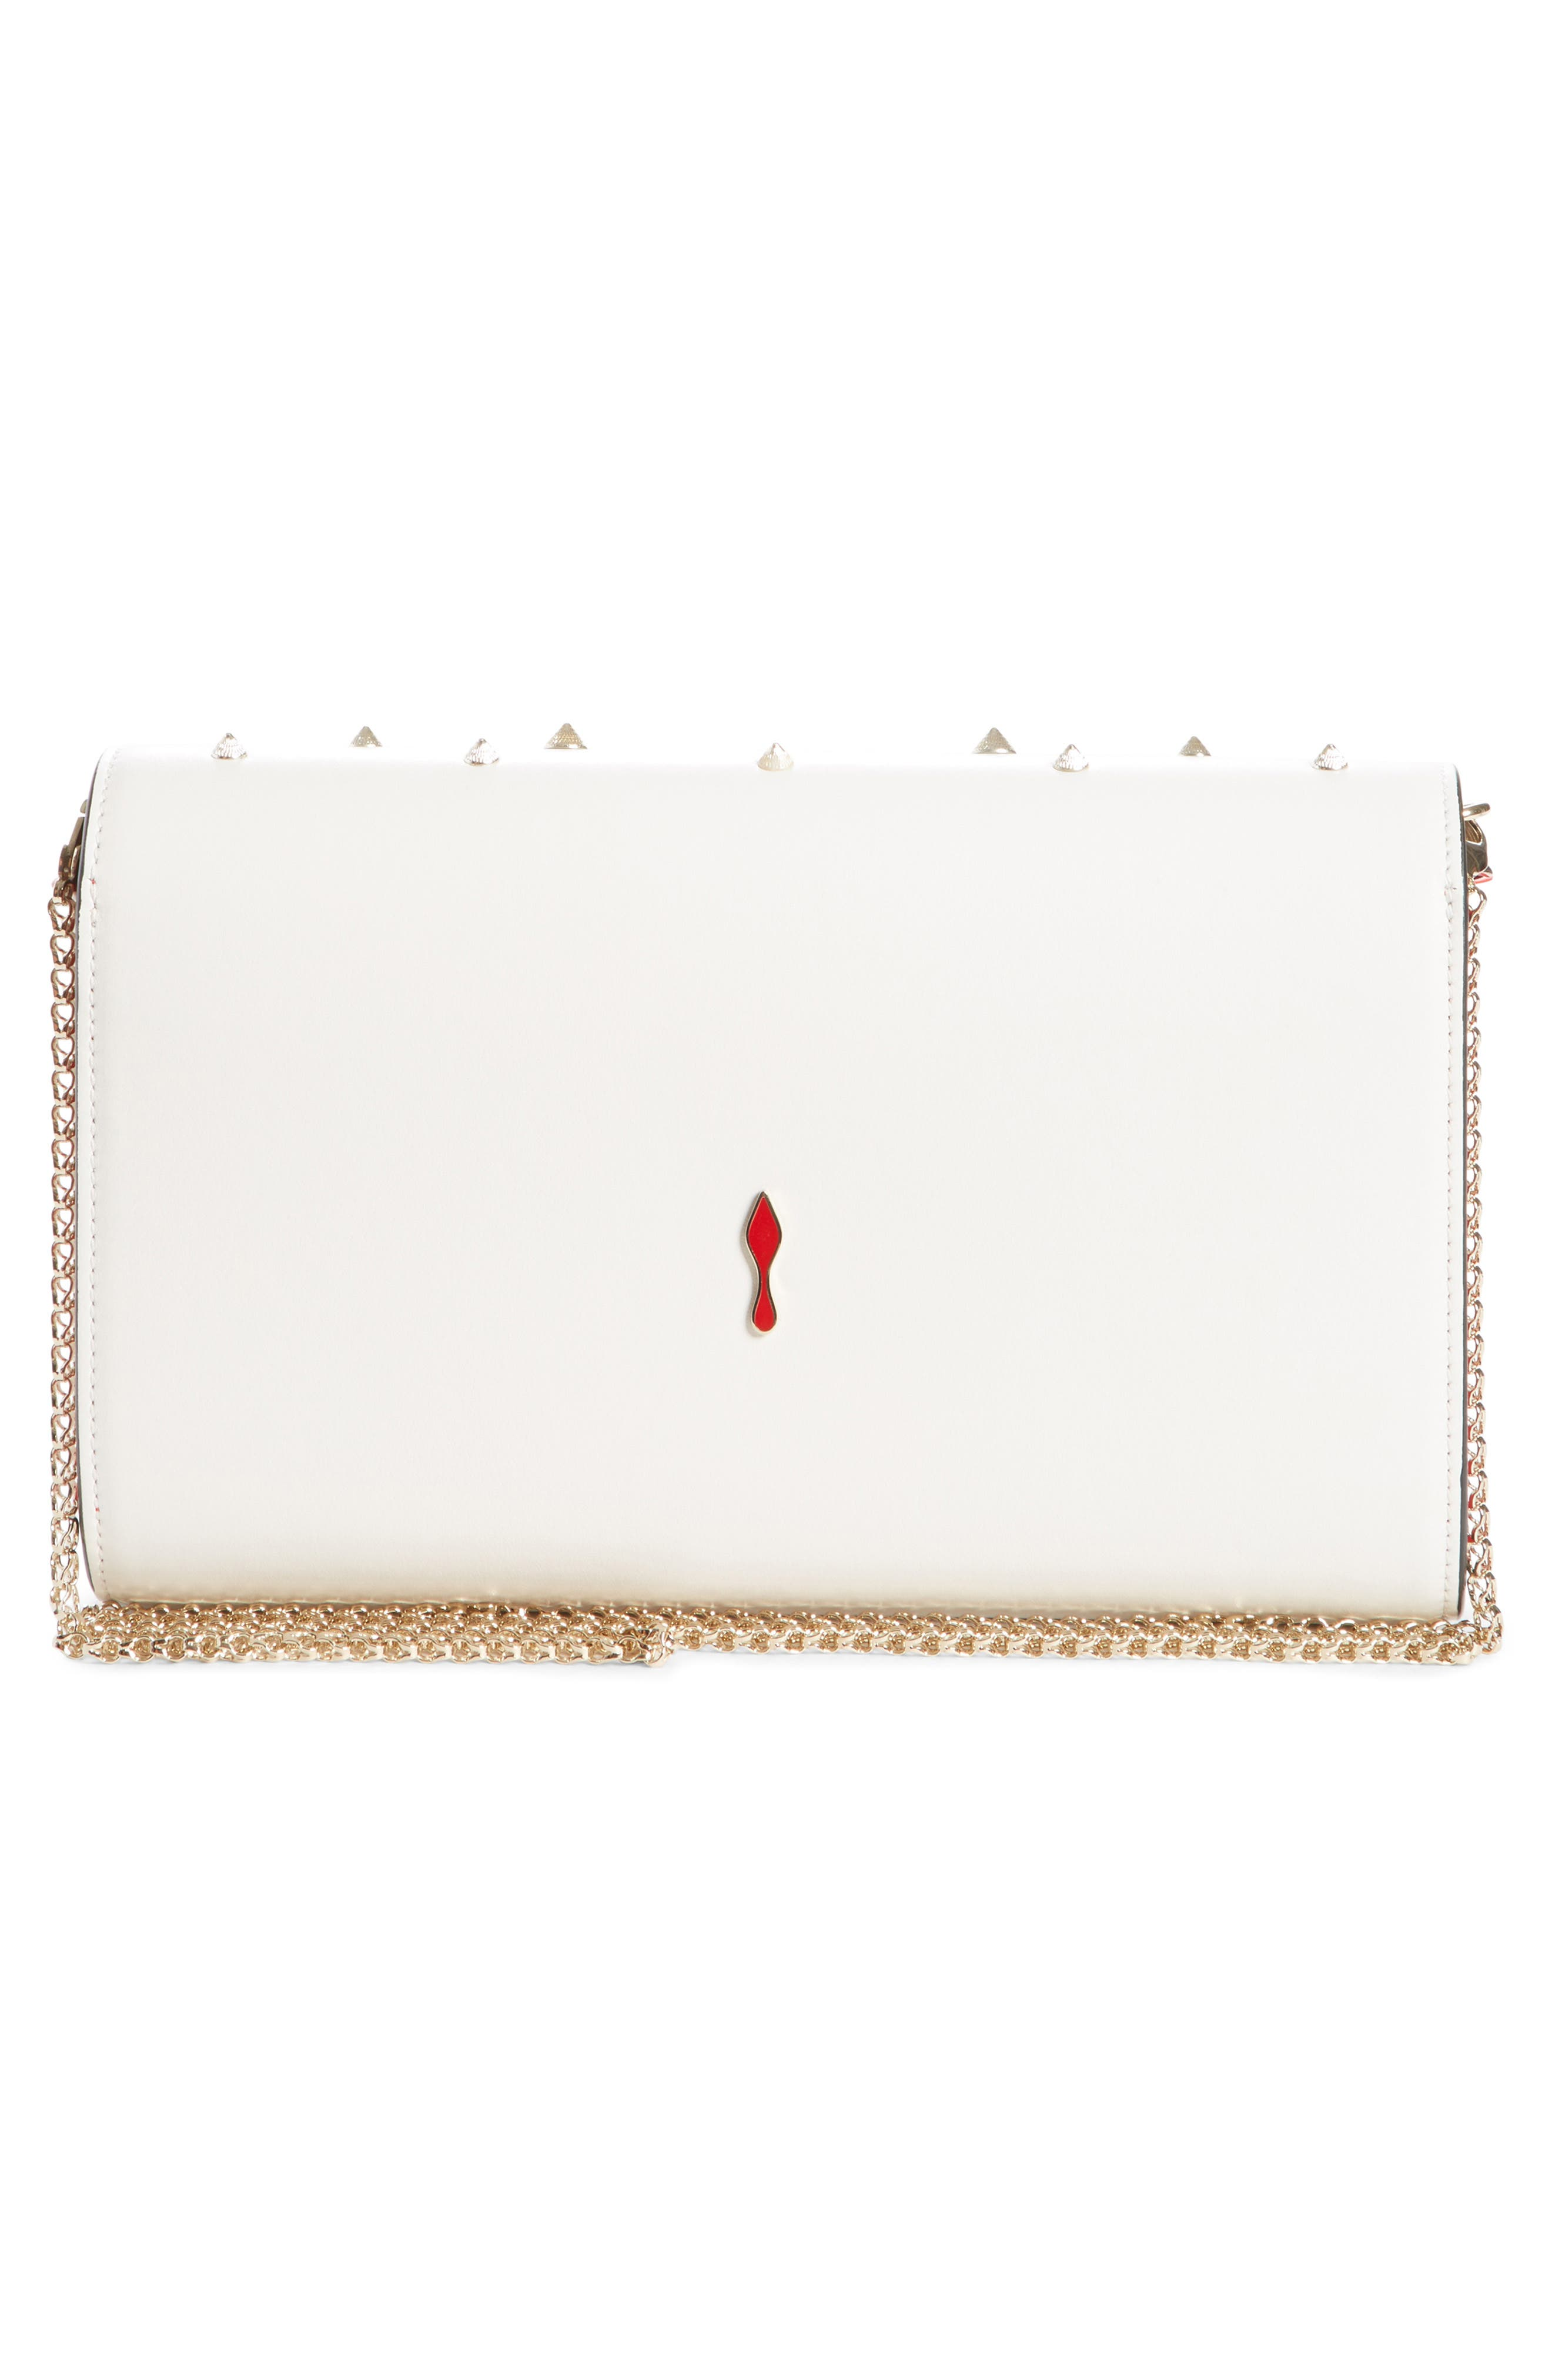 Paloma Spiked Calfskin Clutch,                             Alternate thumbnail 2, color,                             105